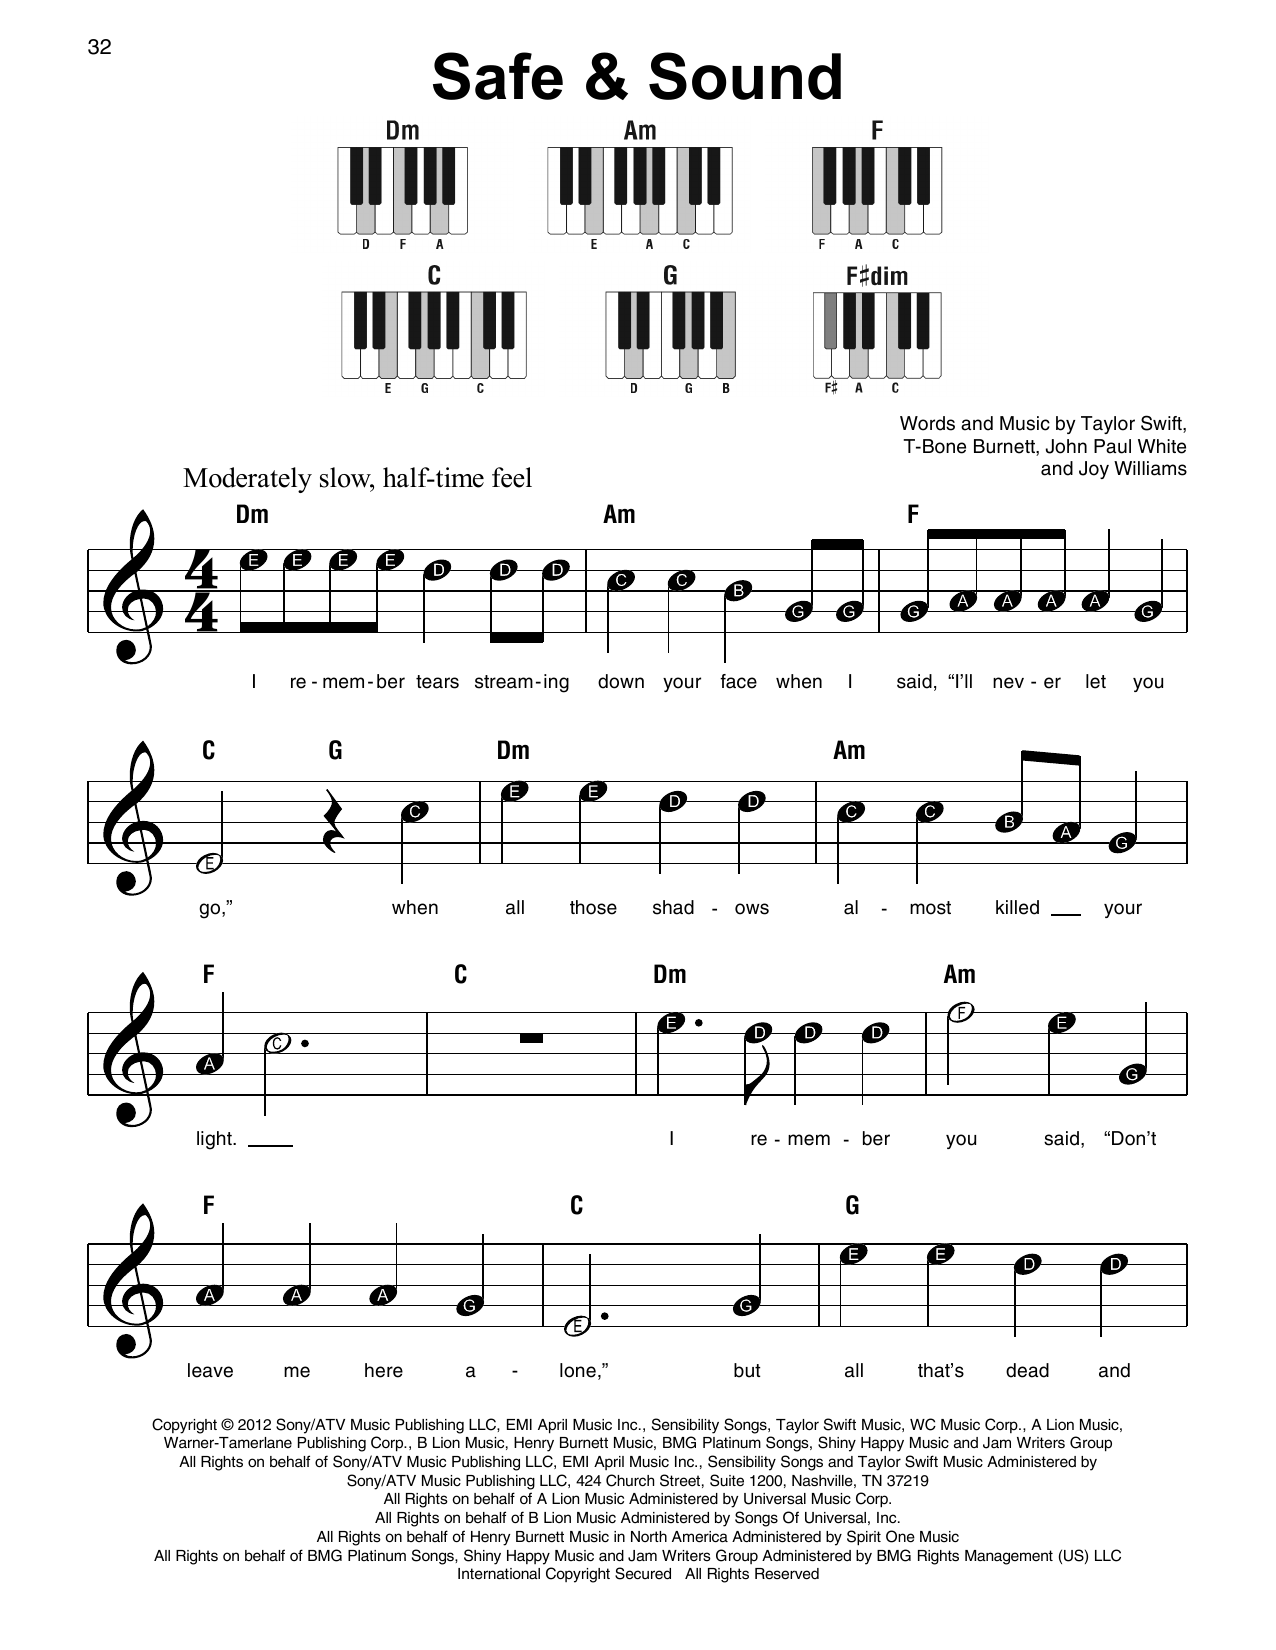 Taylor Swift Safe Sound Feat The Civil Wars From The Hunger Games Sheet Music Download Pdf Score 163703